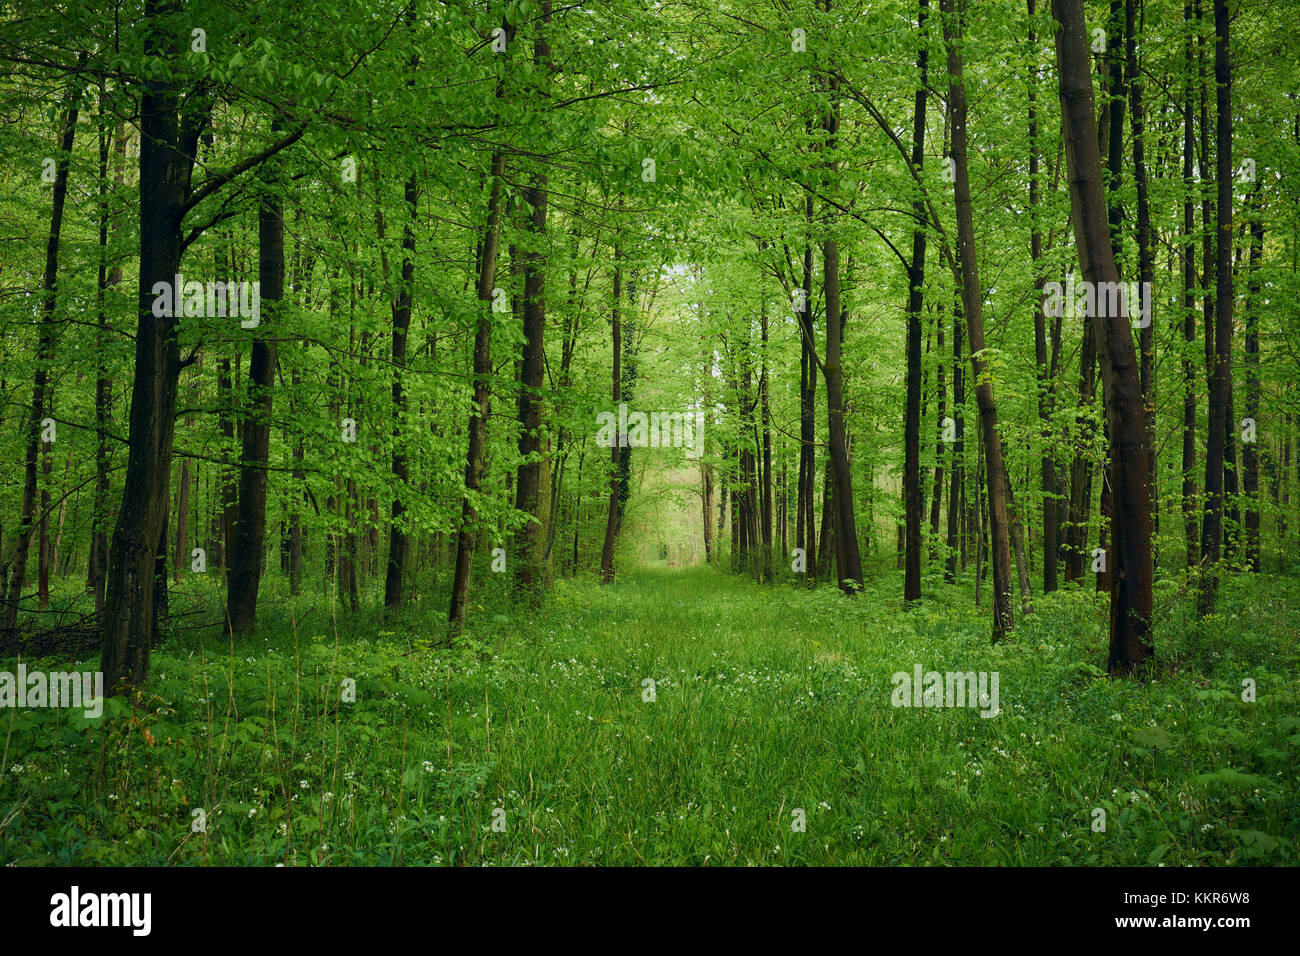 Forest in spring with wild garlic and invisible path leading to a clearing - Stock Image